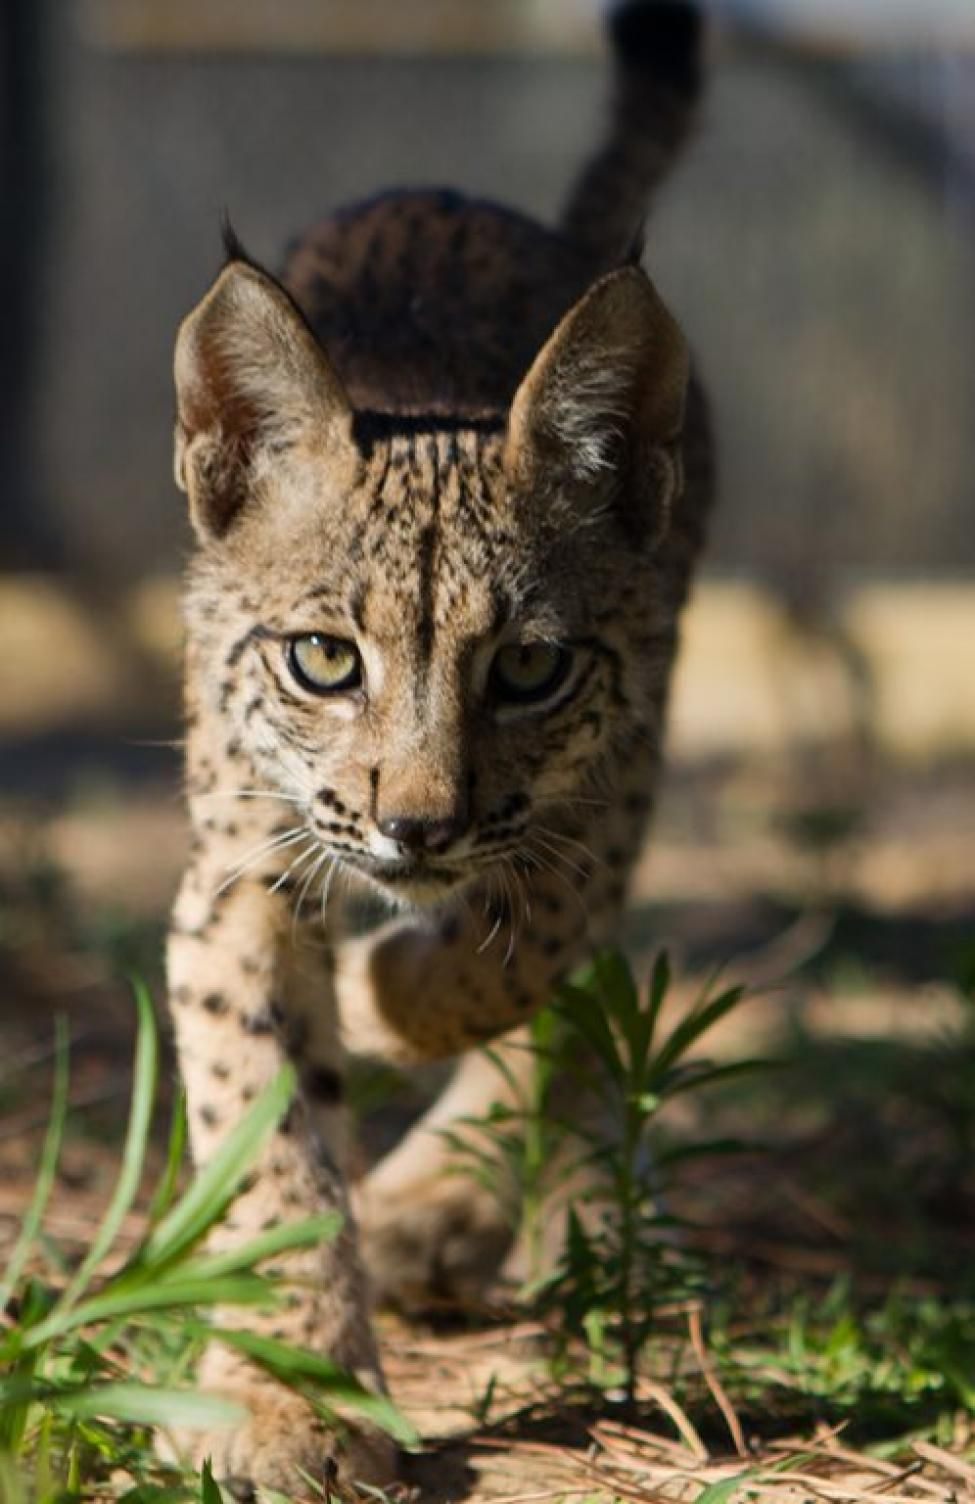 Pin by ariana sexton-hughes on save the lynx! | Pinterest | Lynx ... for Lynx Cat Pet  589hul